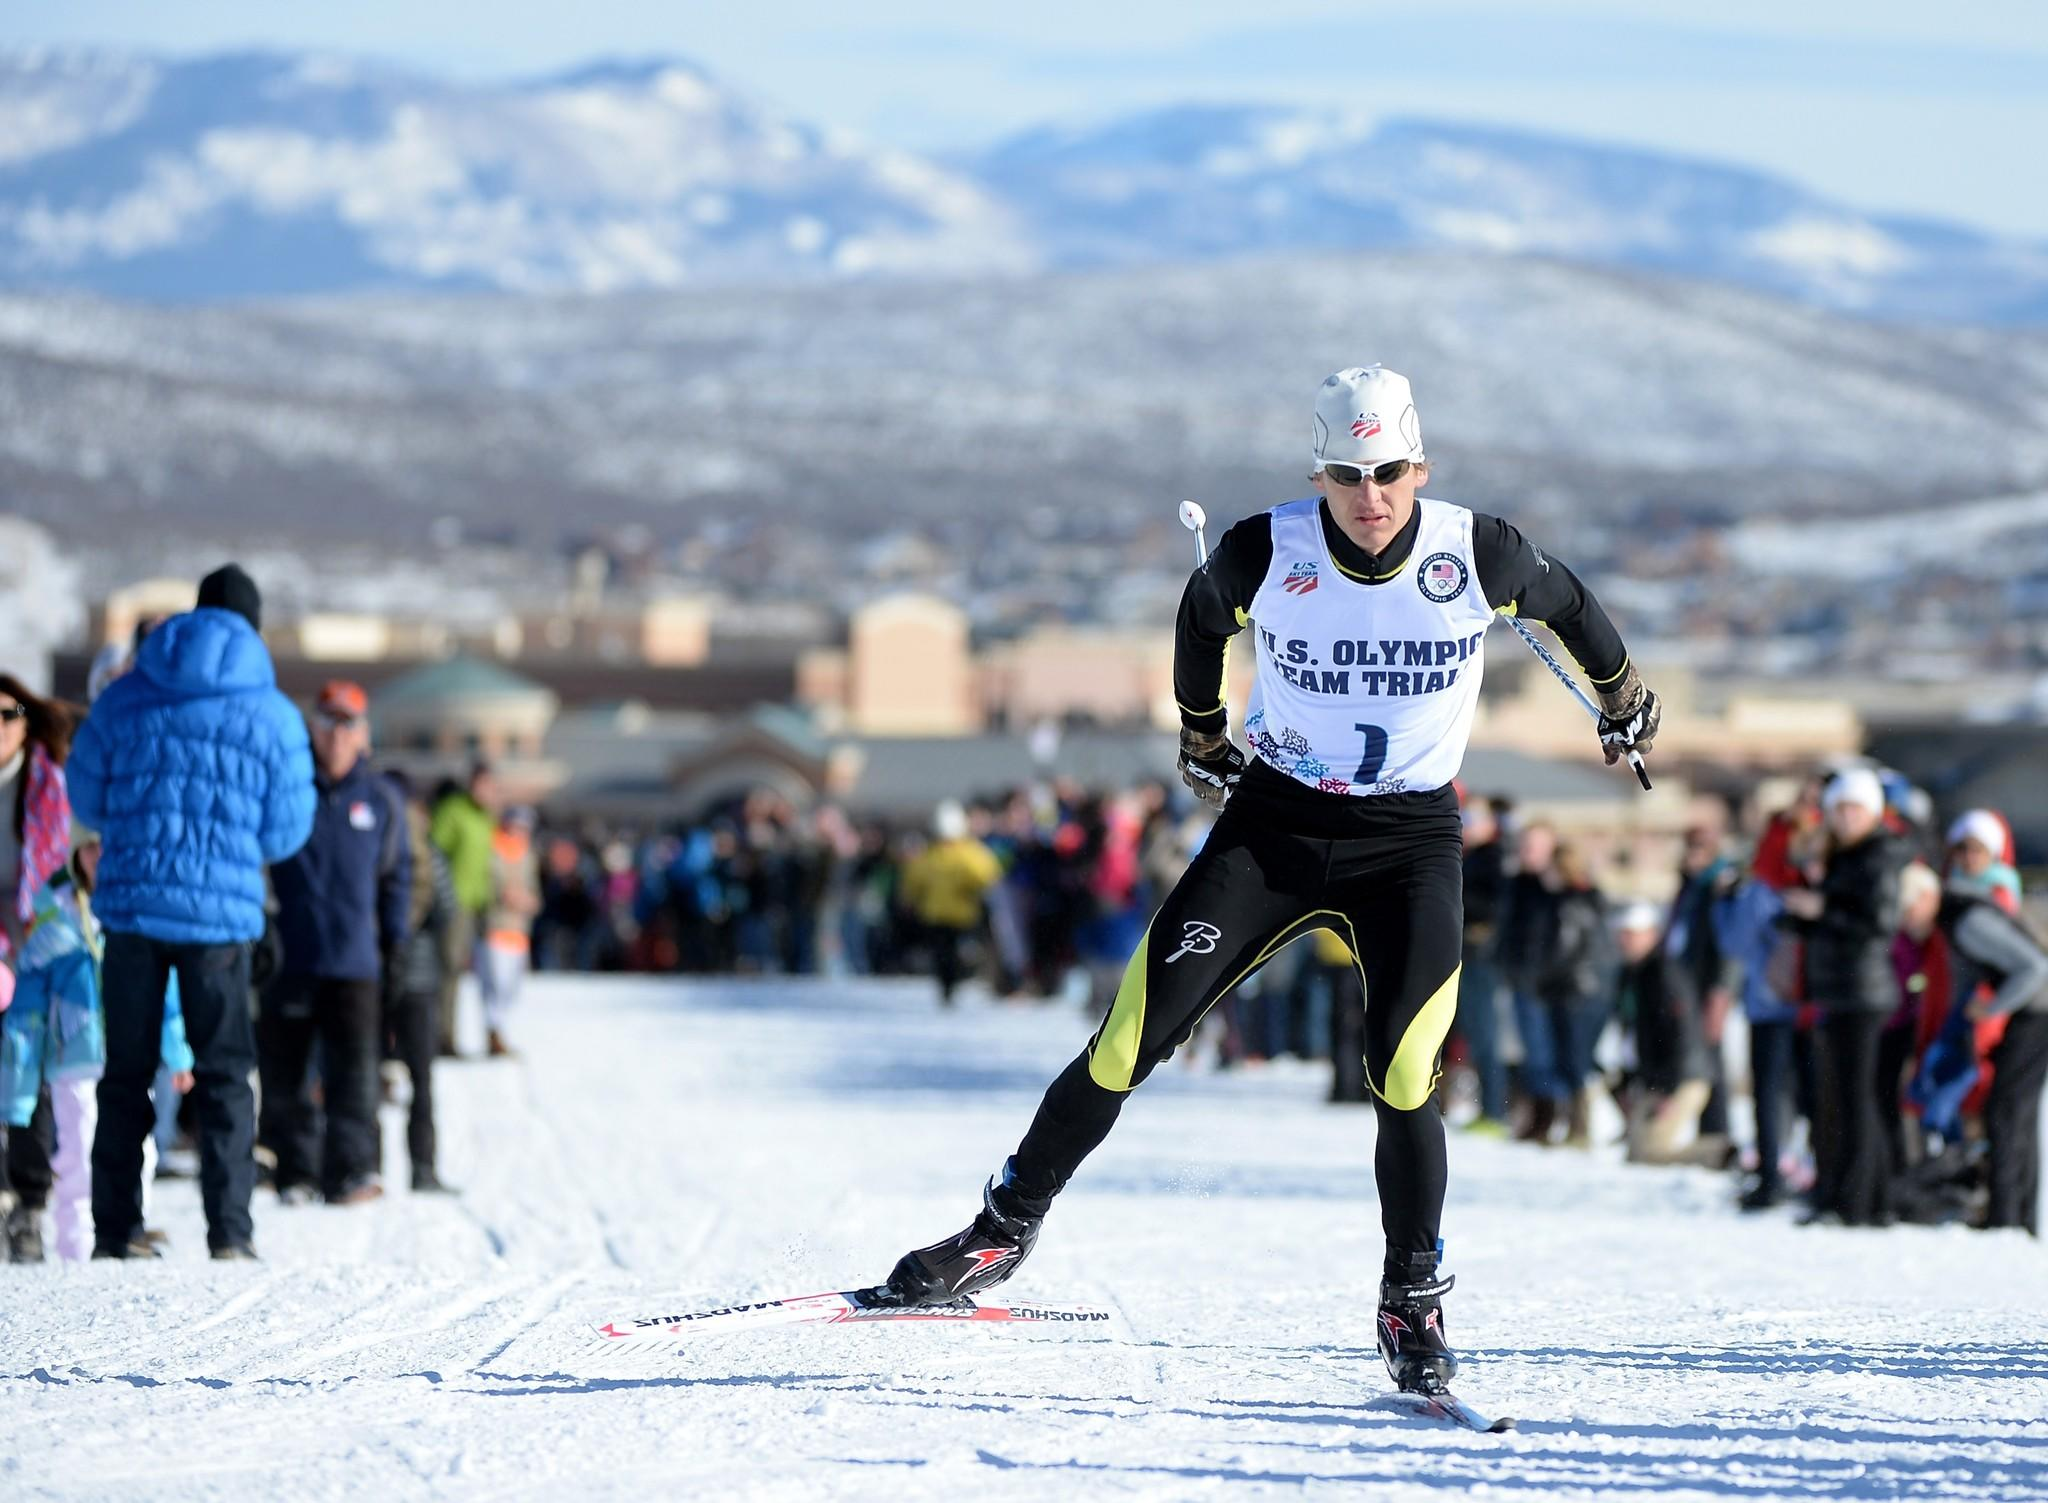 Todd Lodwick skis to a first-place finish in the 10-kilometer cross-country race during the U.S. Olympic trials in Park City, Utah.